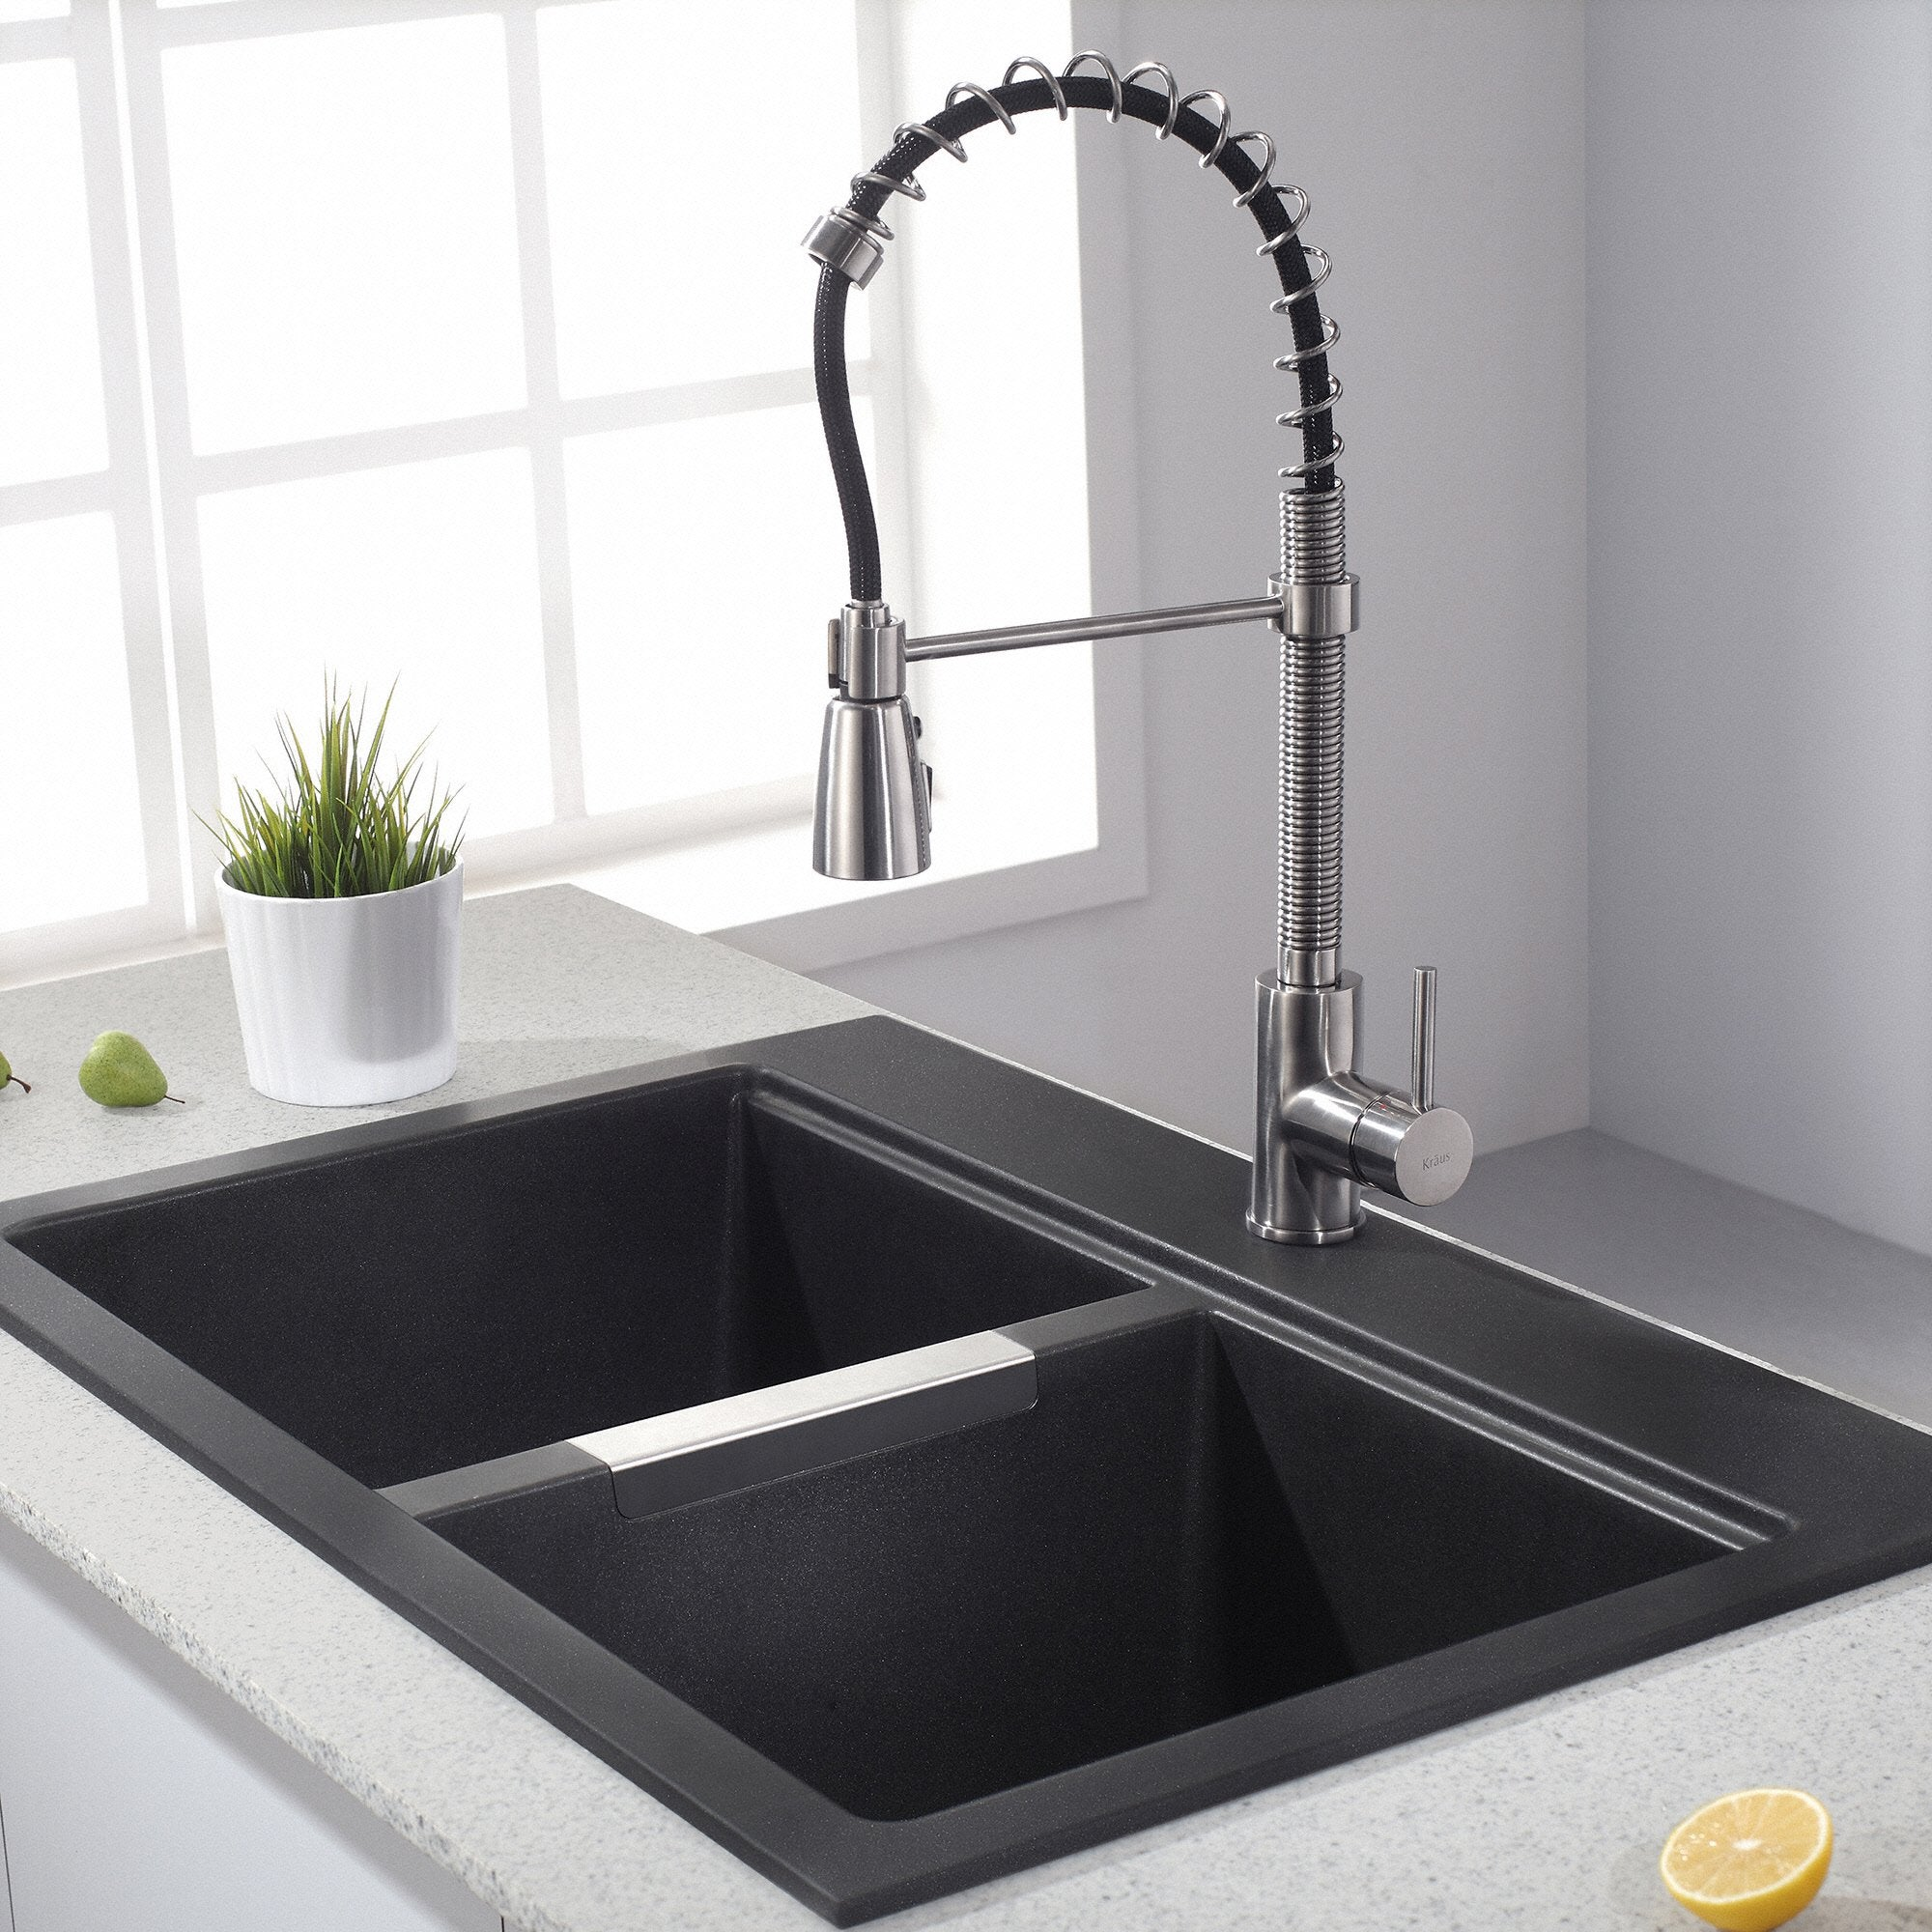 Kraus Kitchen Sinks | 16 Gauge Stainless Steel Kitchen Sinks | Direct Sinks  U2013 DirectSinks